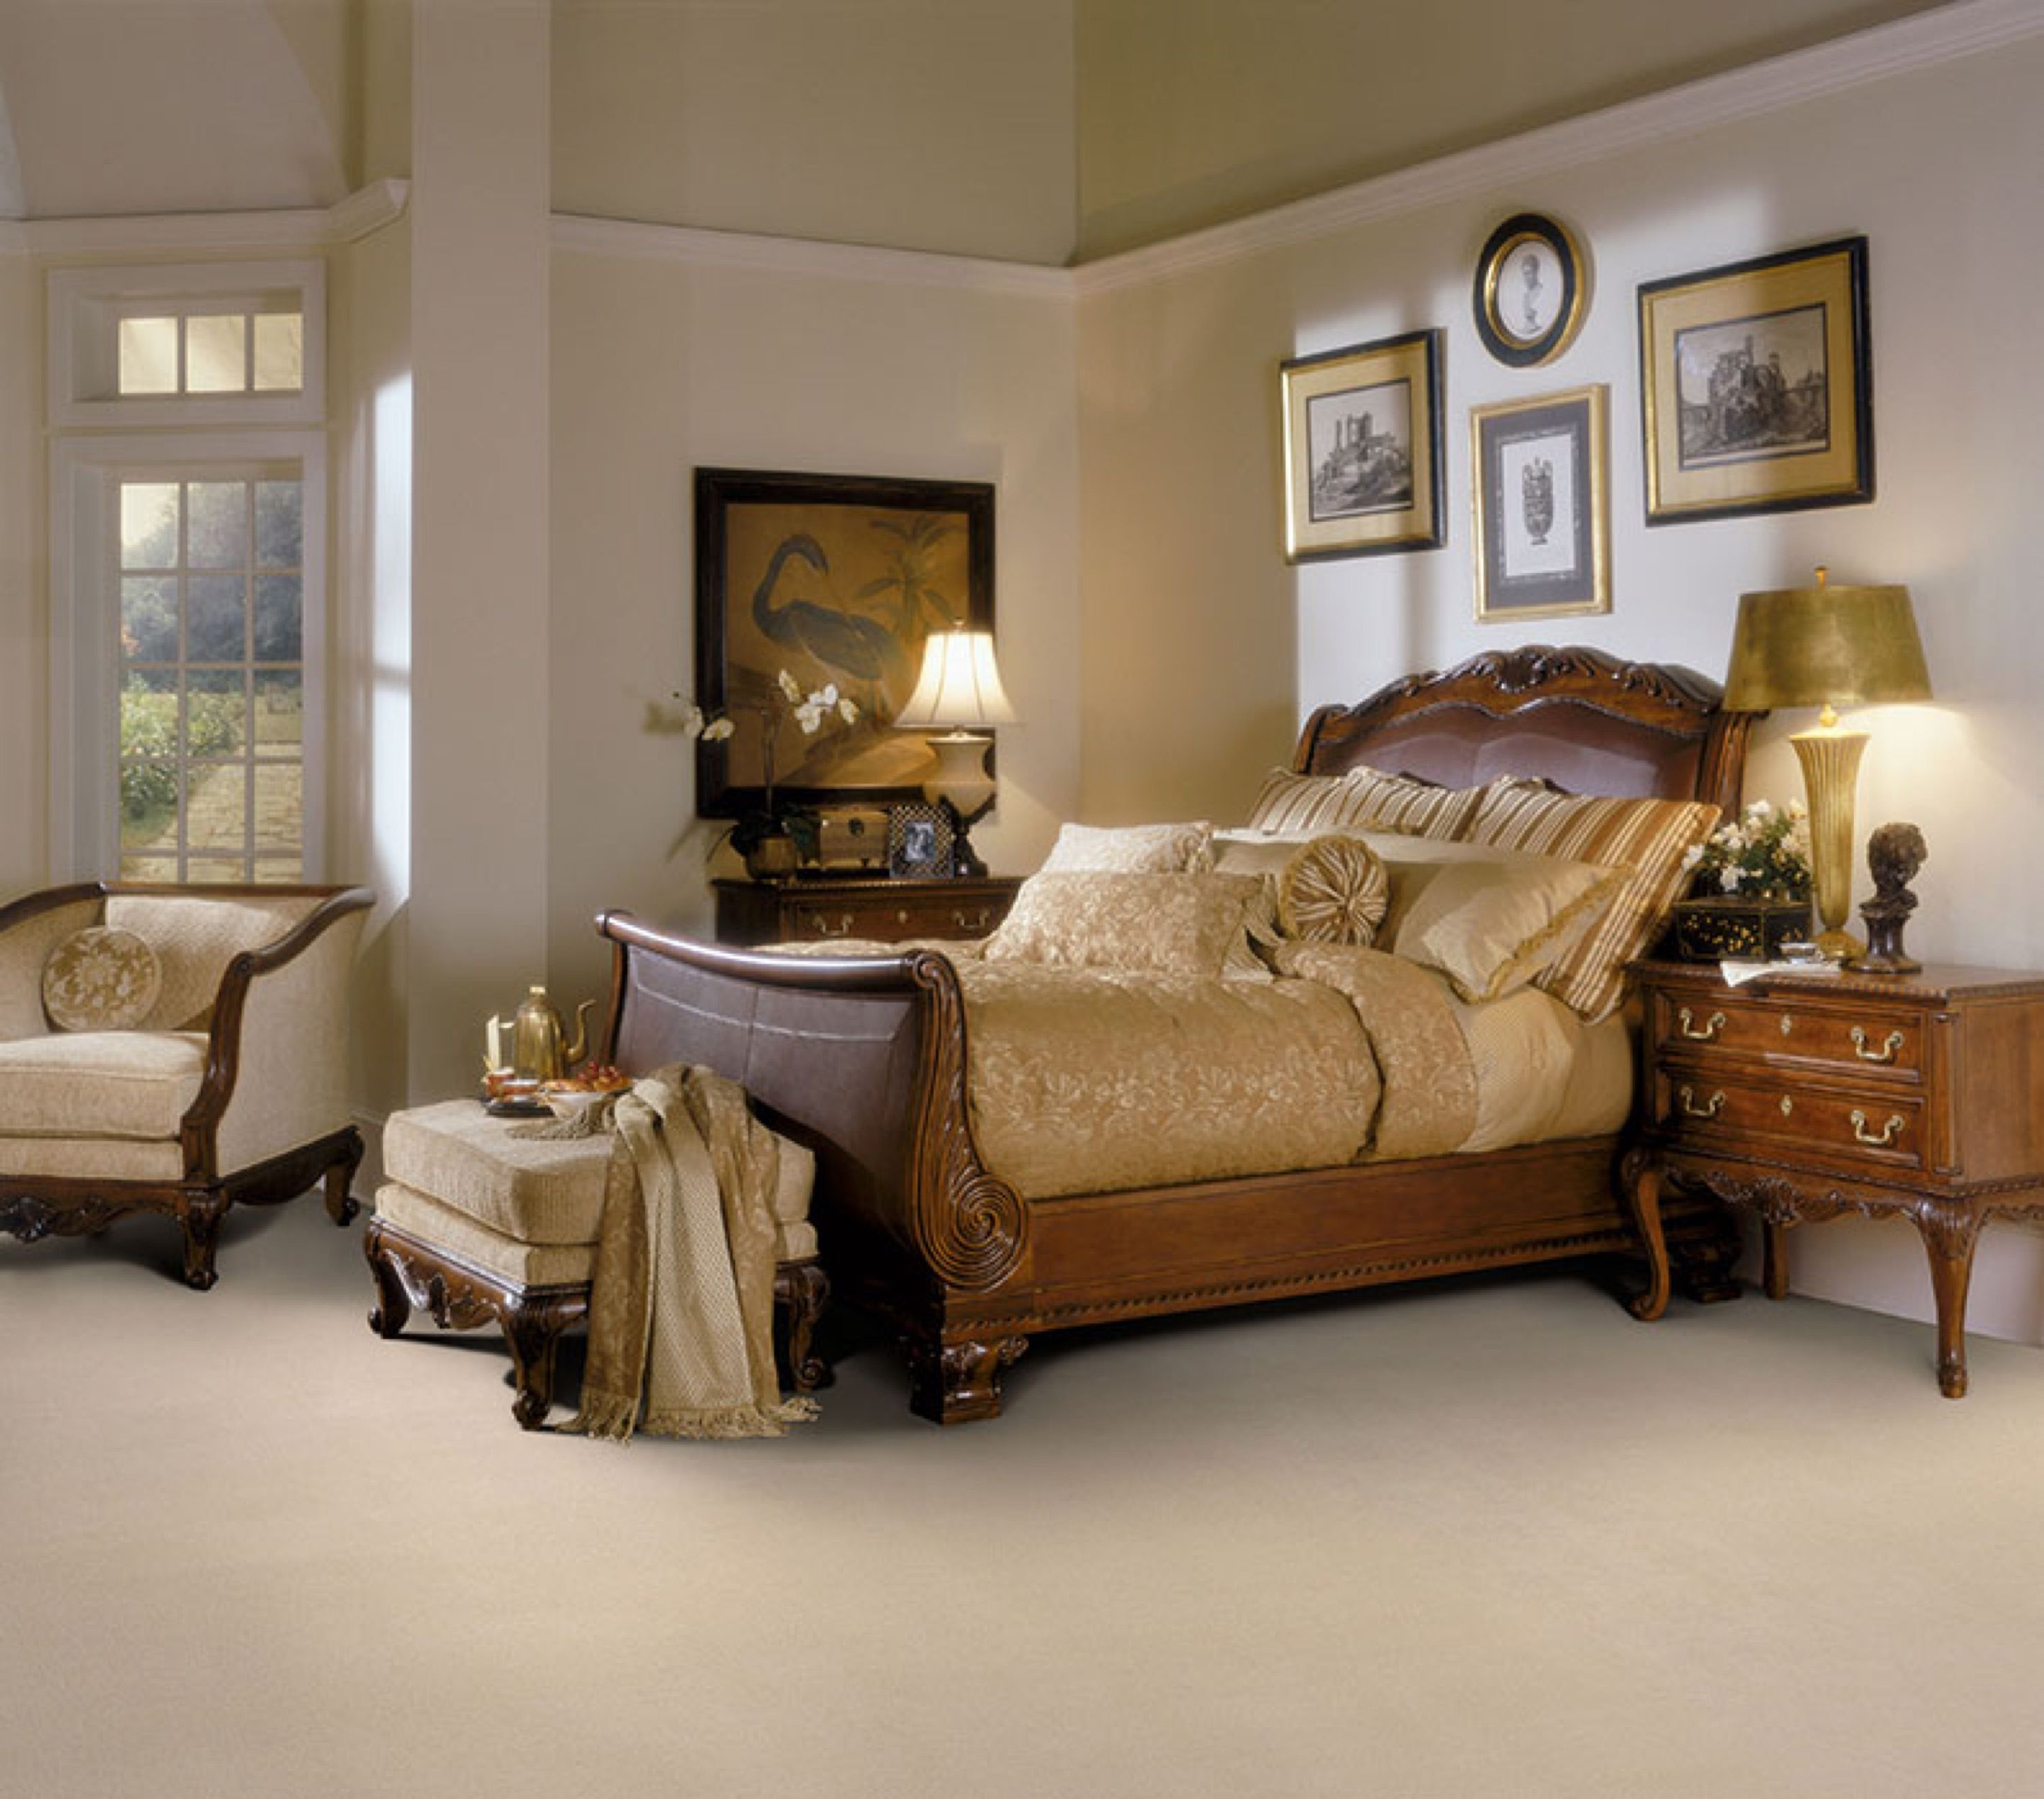 Luxury Bedroom Design With Carpets From Masland Oak Bedroom King Bedroom Sets Luxurious Bedrooms